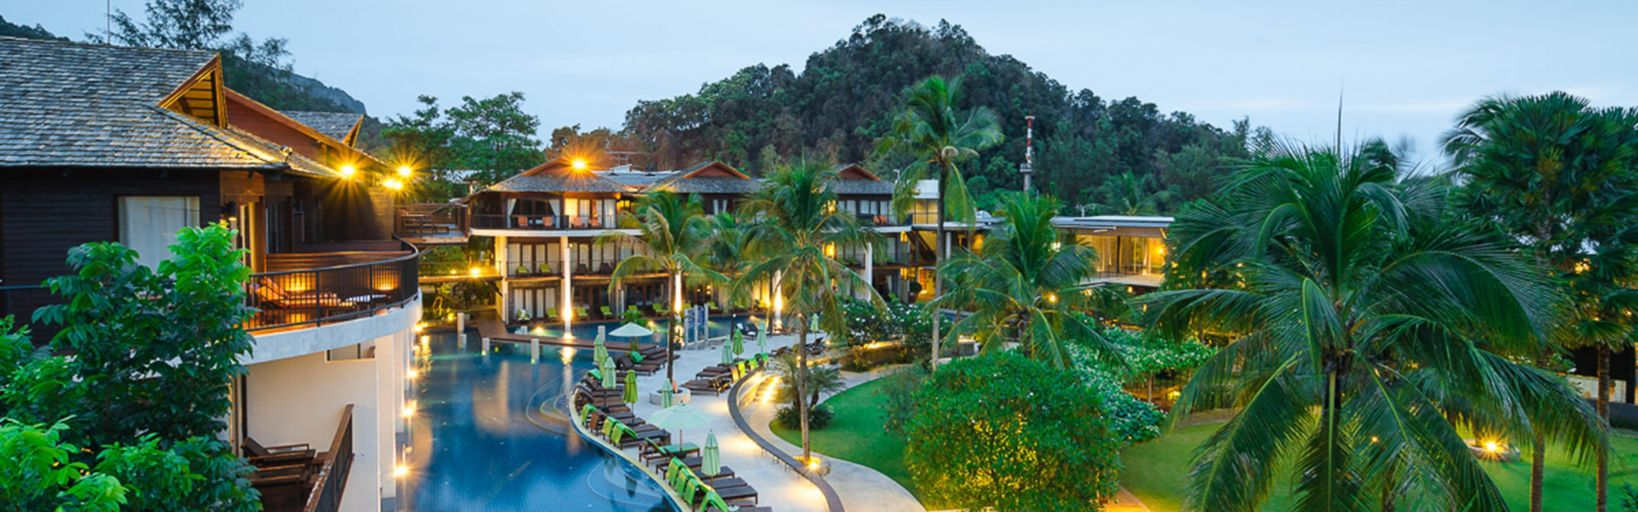 holiday-inn-resort-krabi-3555538433-16×5